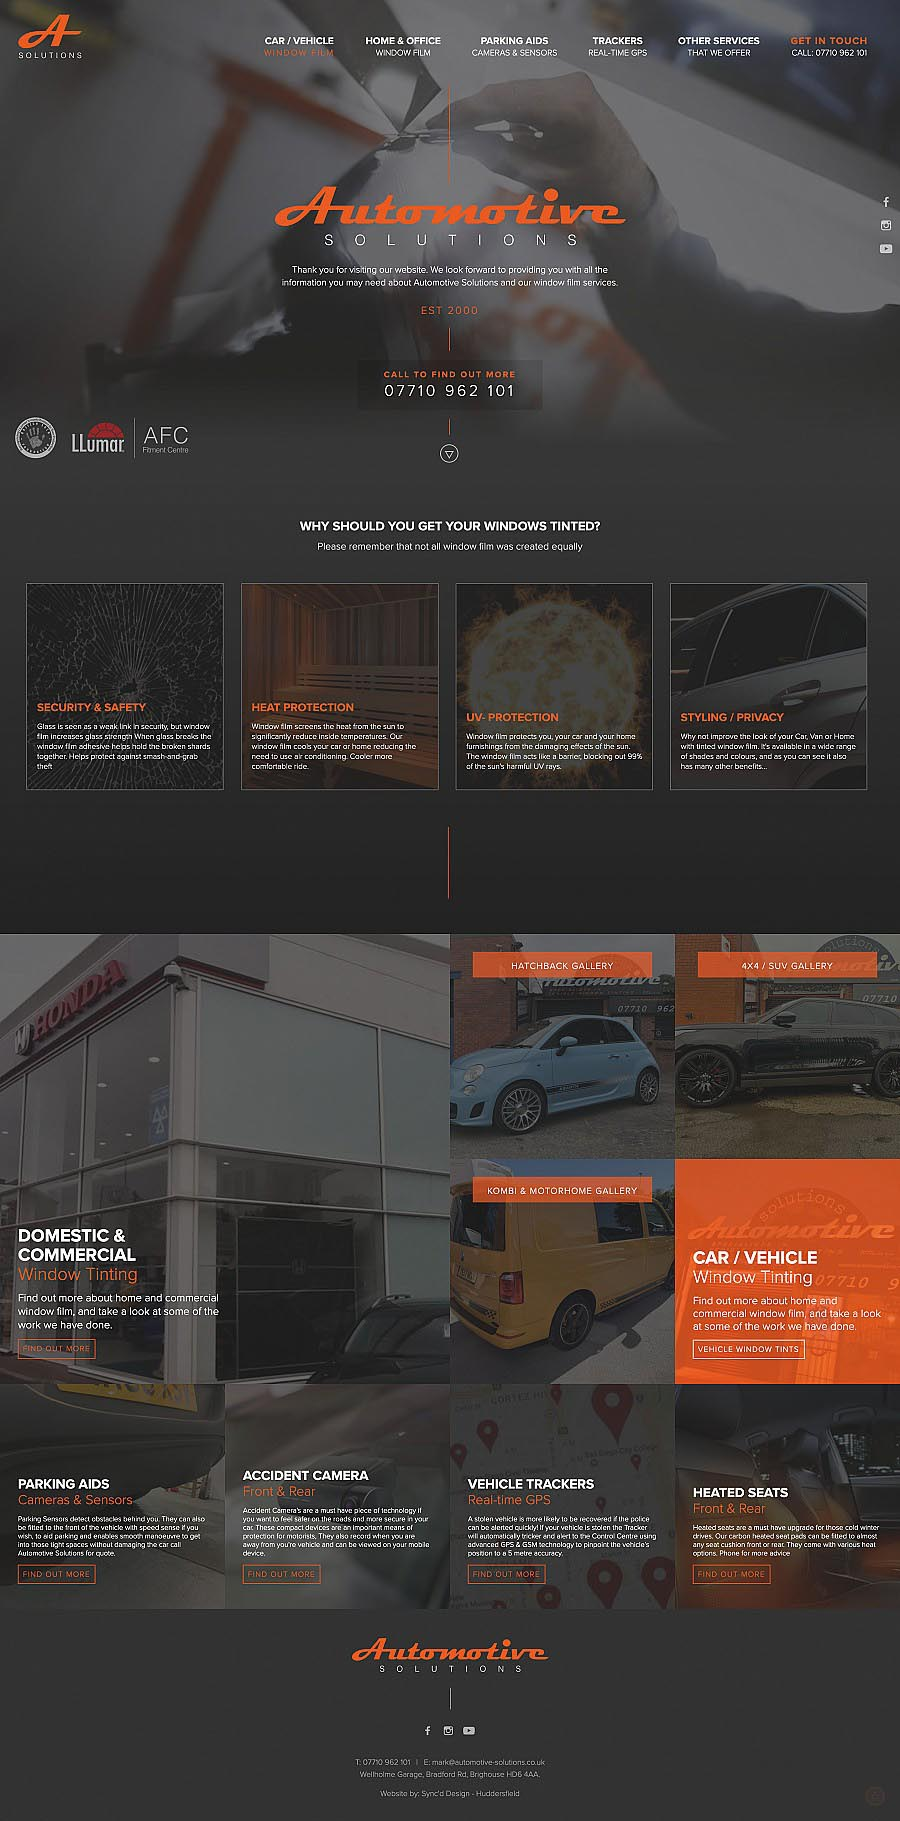 Automotive Solutions window tinting website